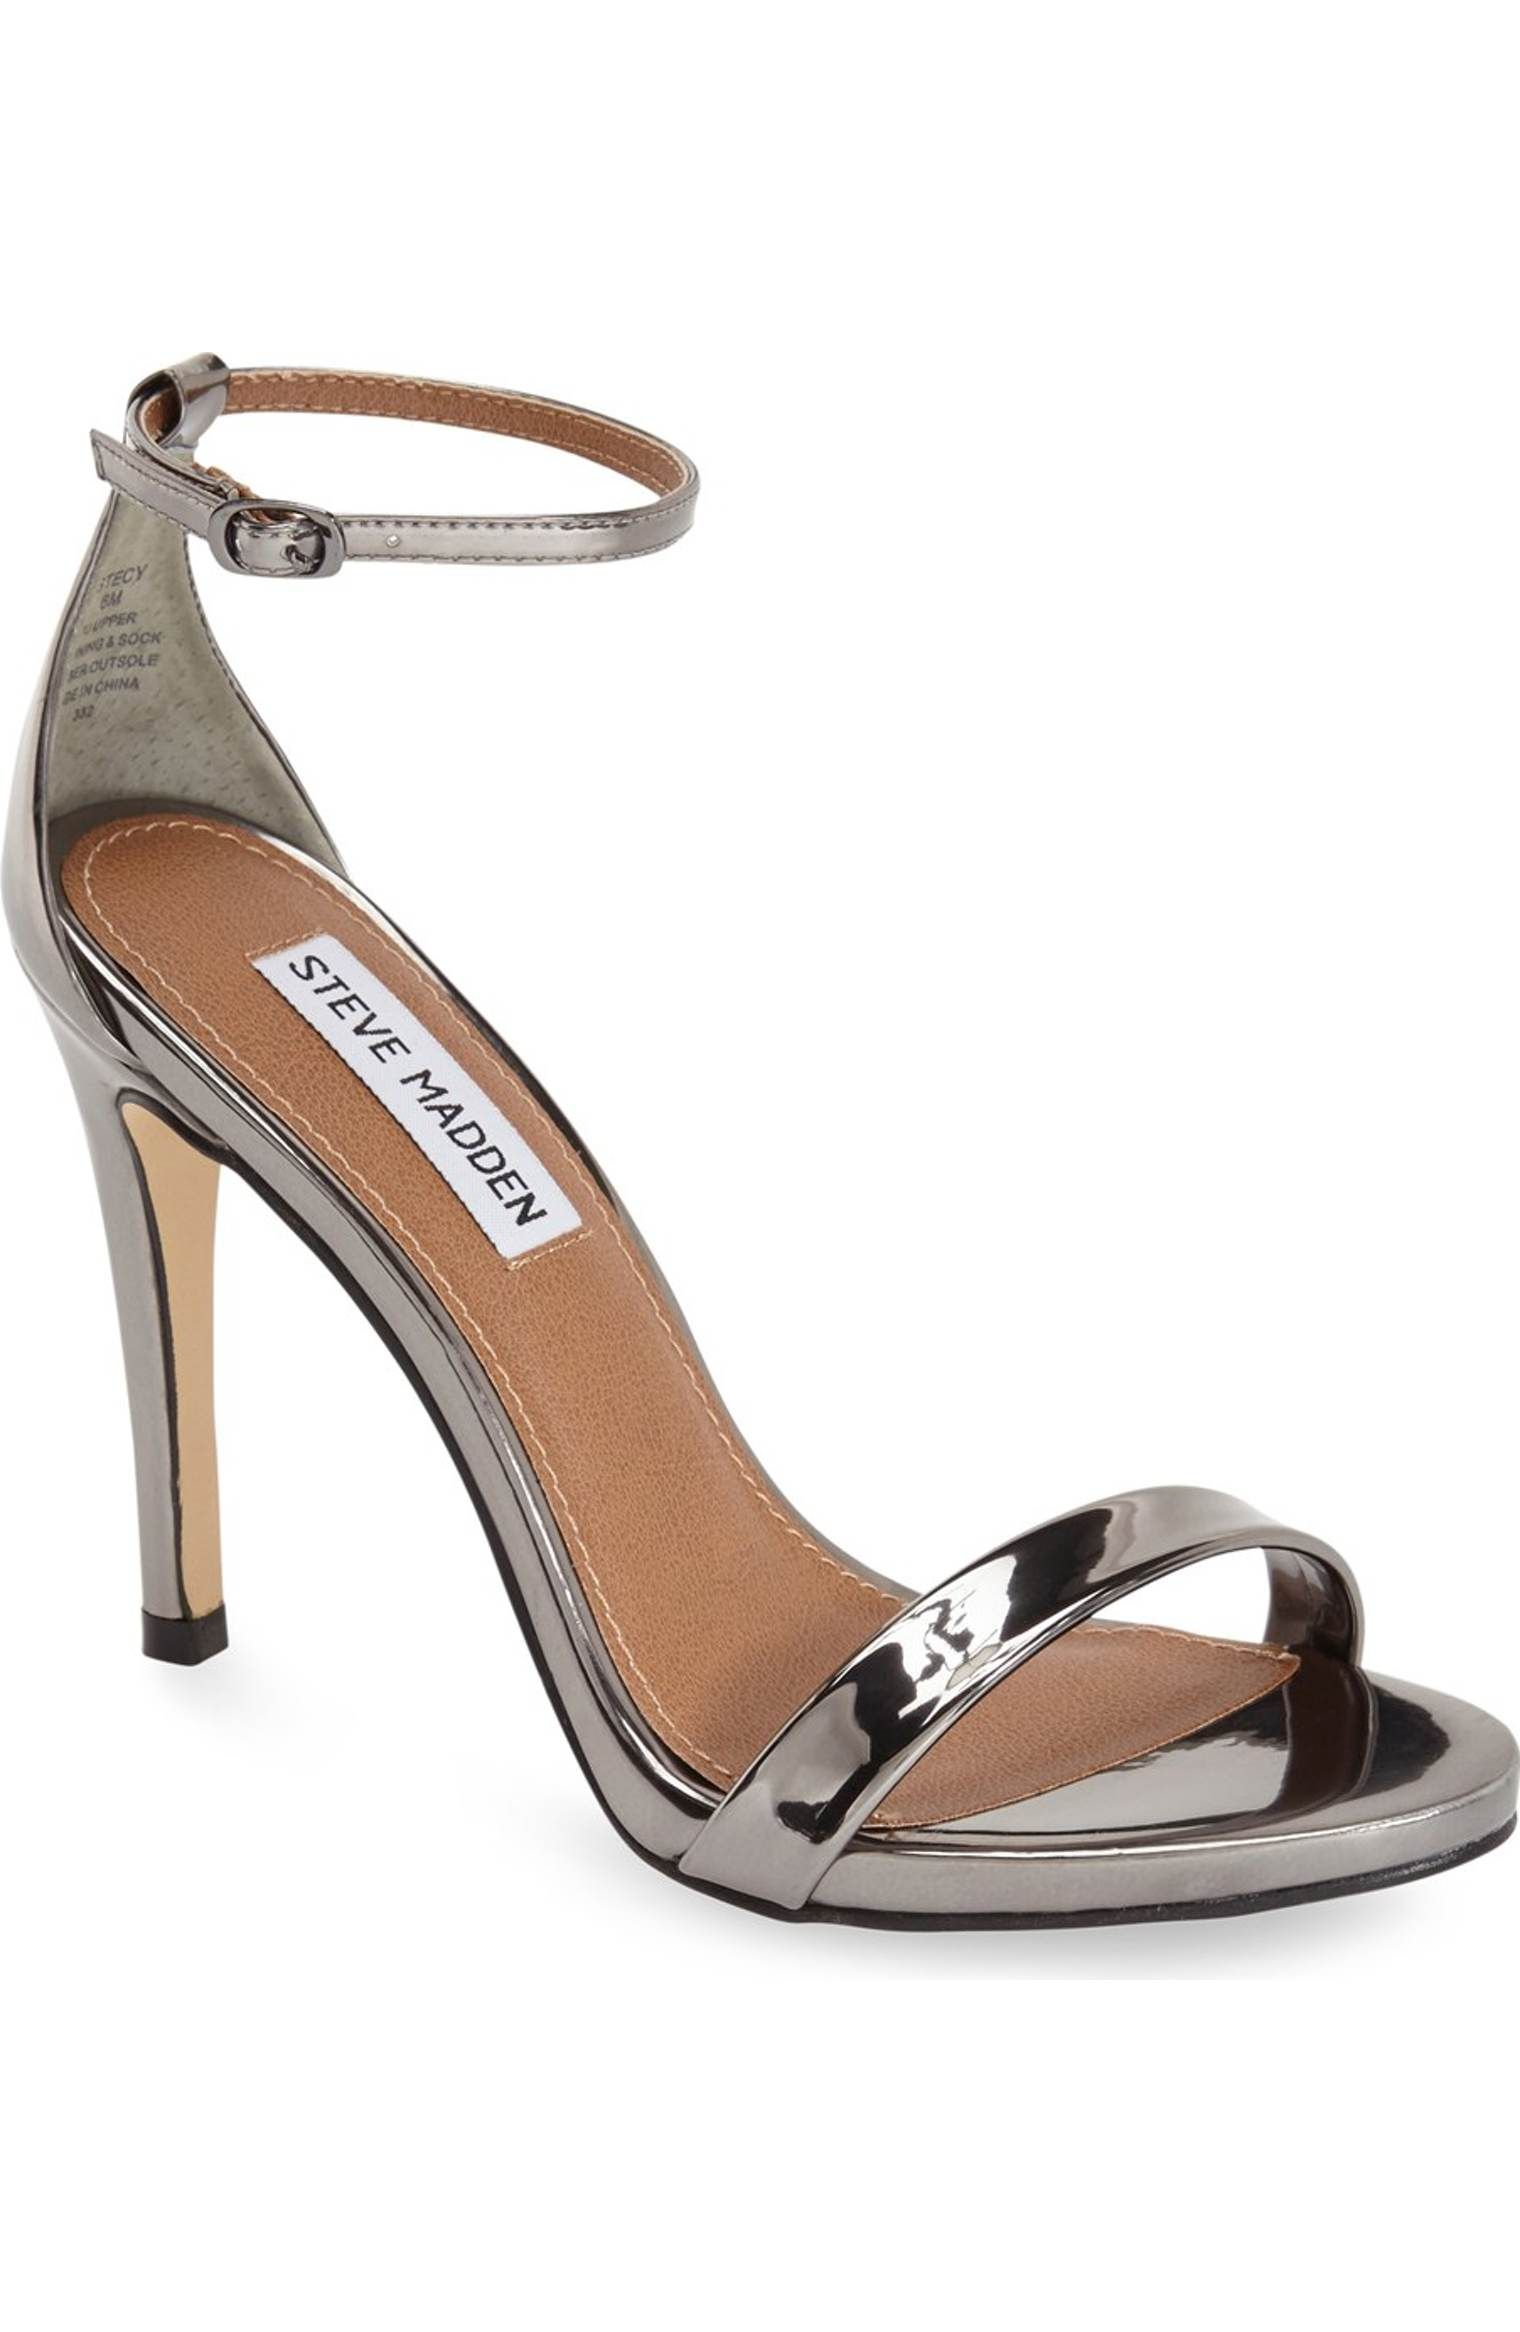 a27c25cb15f Main Image - Steve Madden 'Stecy' Sandal (Women) | Shoes | Steve ...